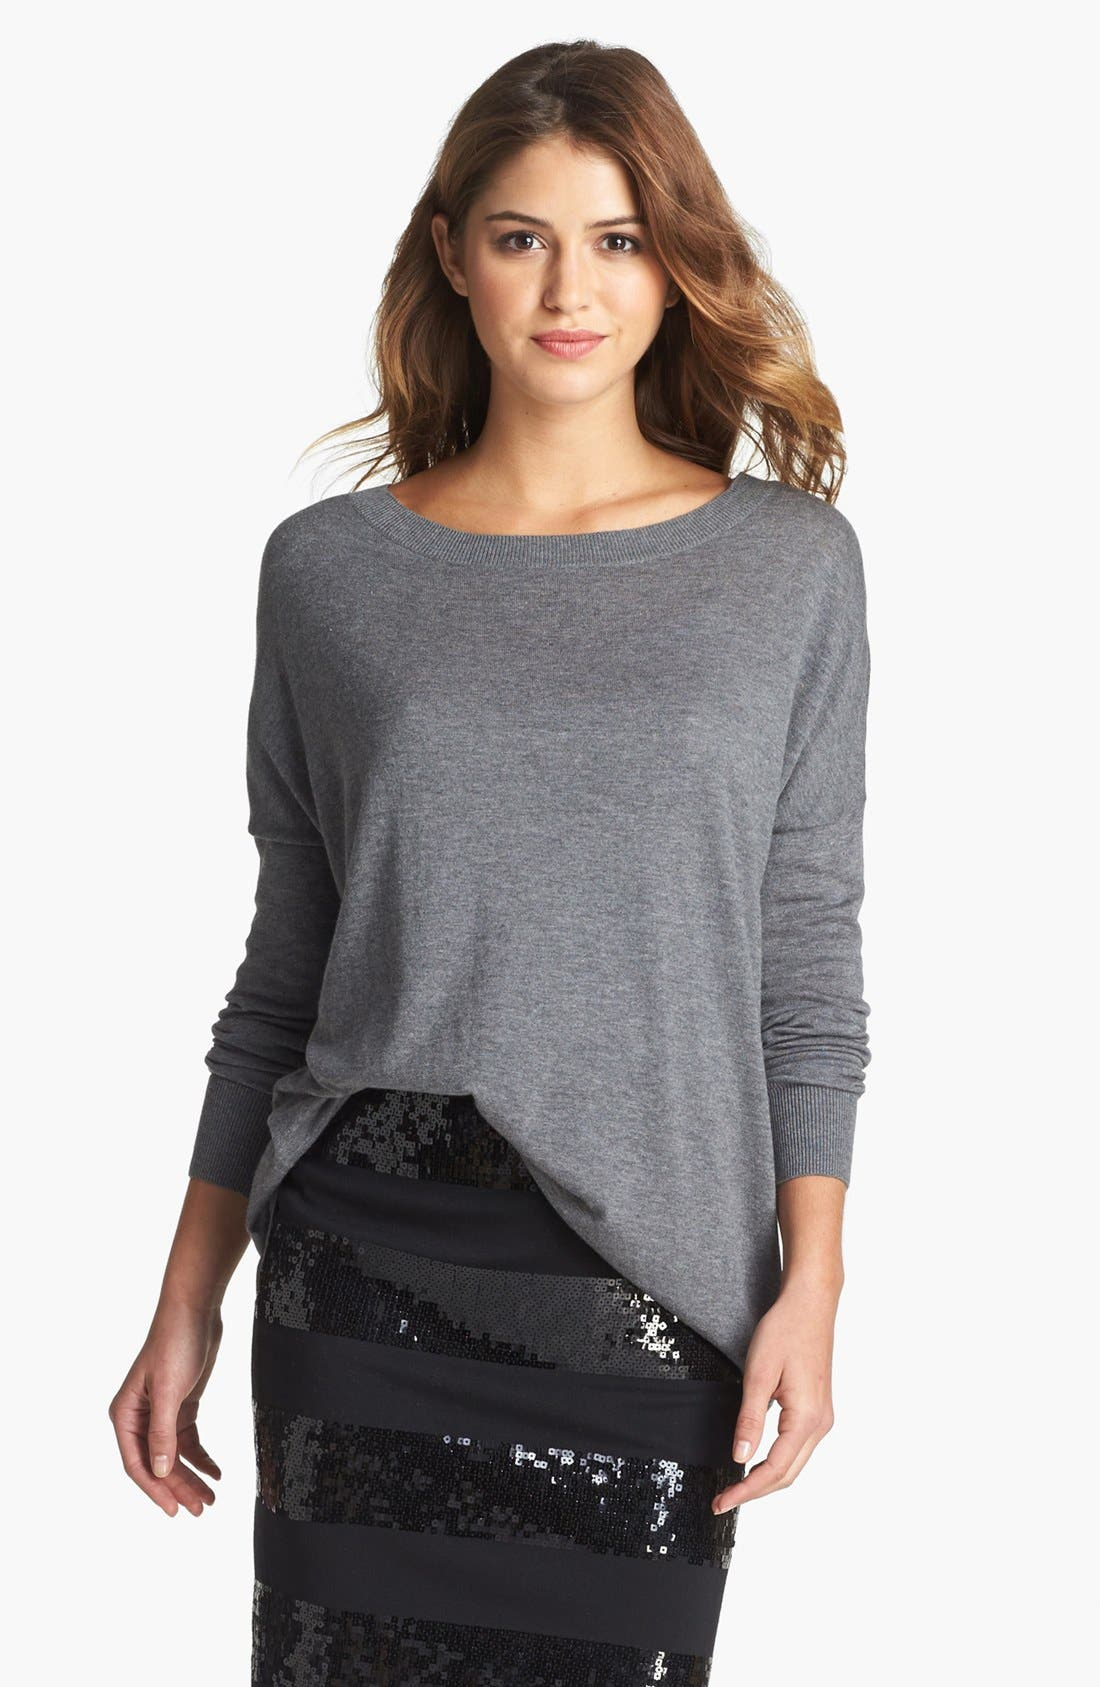 Alternate Image 1 Selected - Halogen® High/Low Tunic Sweater (Petite)